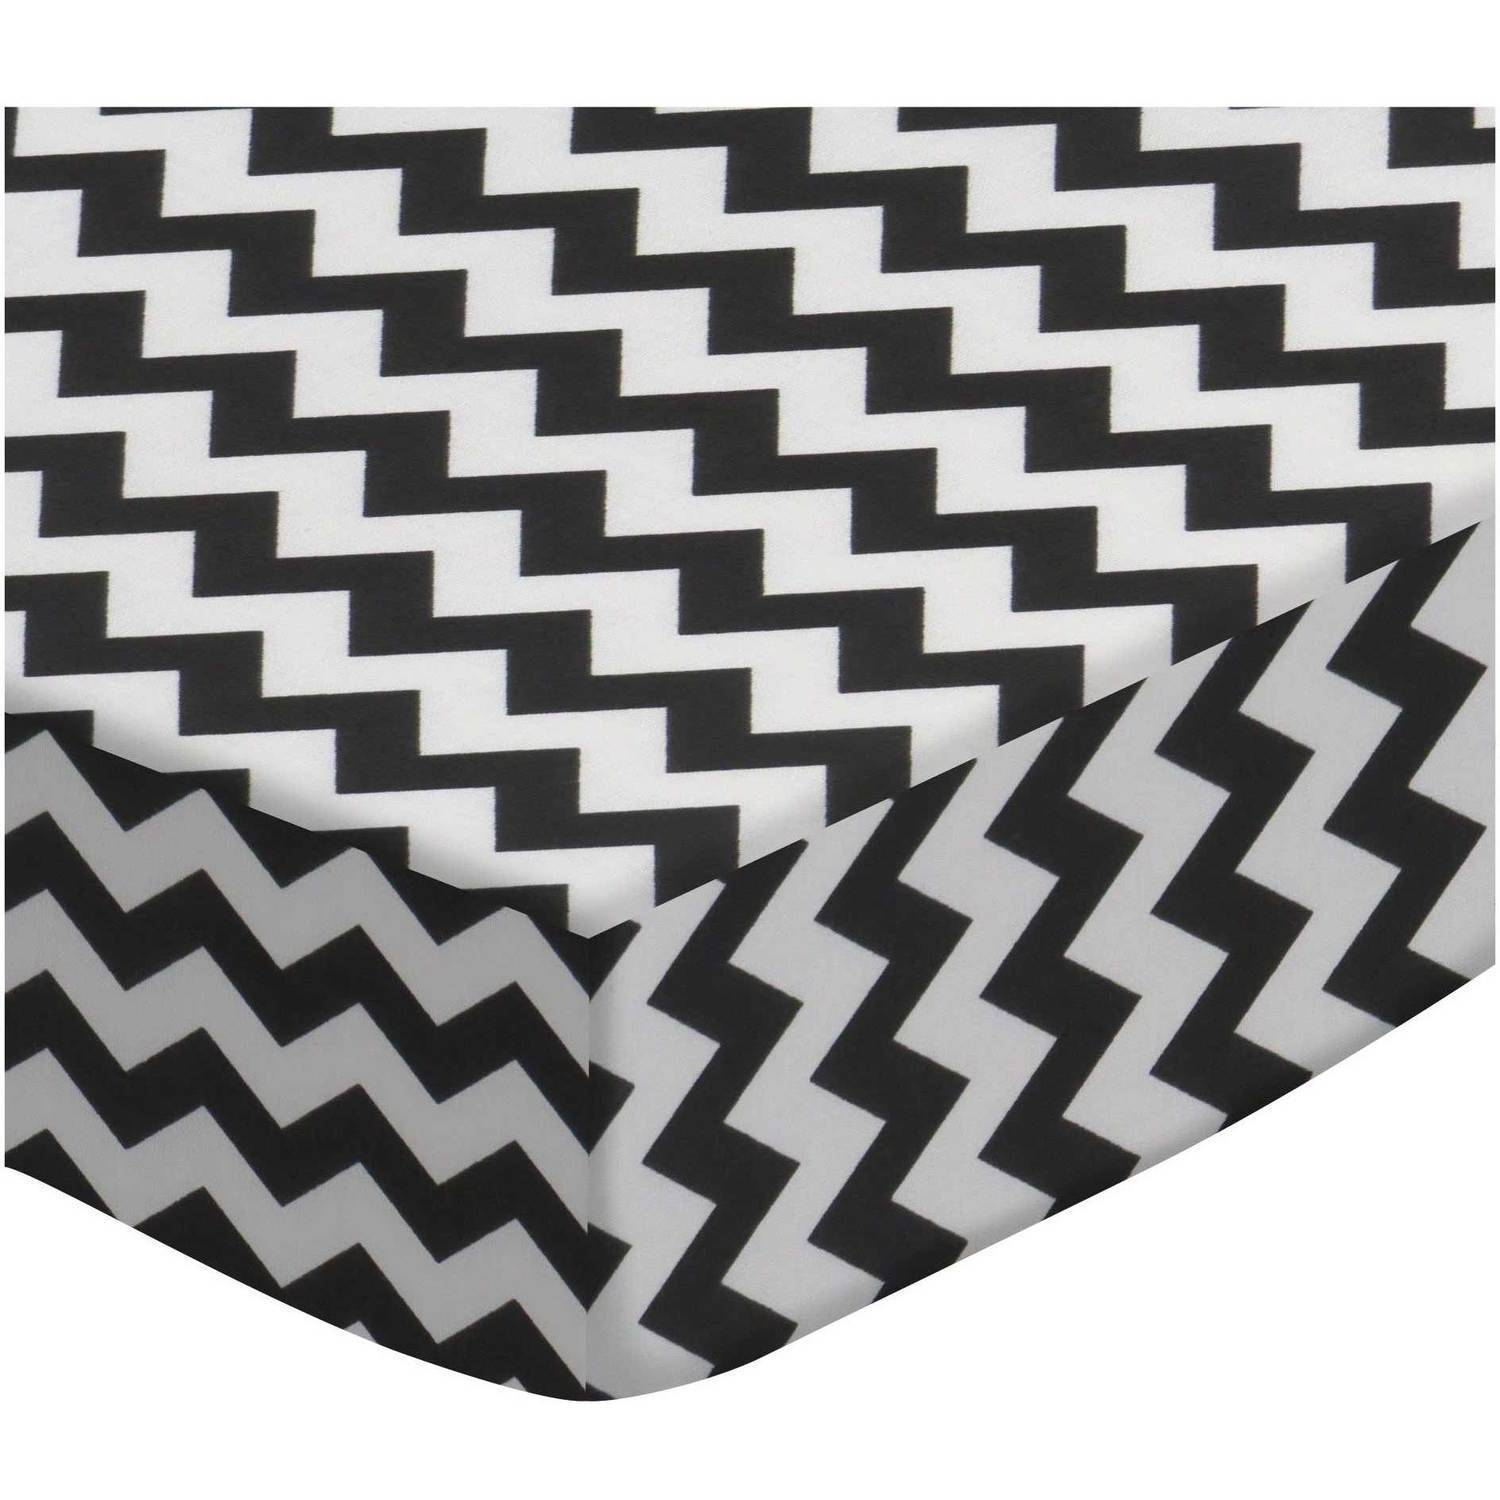 SheetWorld Fitted Crib / Toddler Sheet - Black Chevron Zigzag